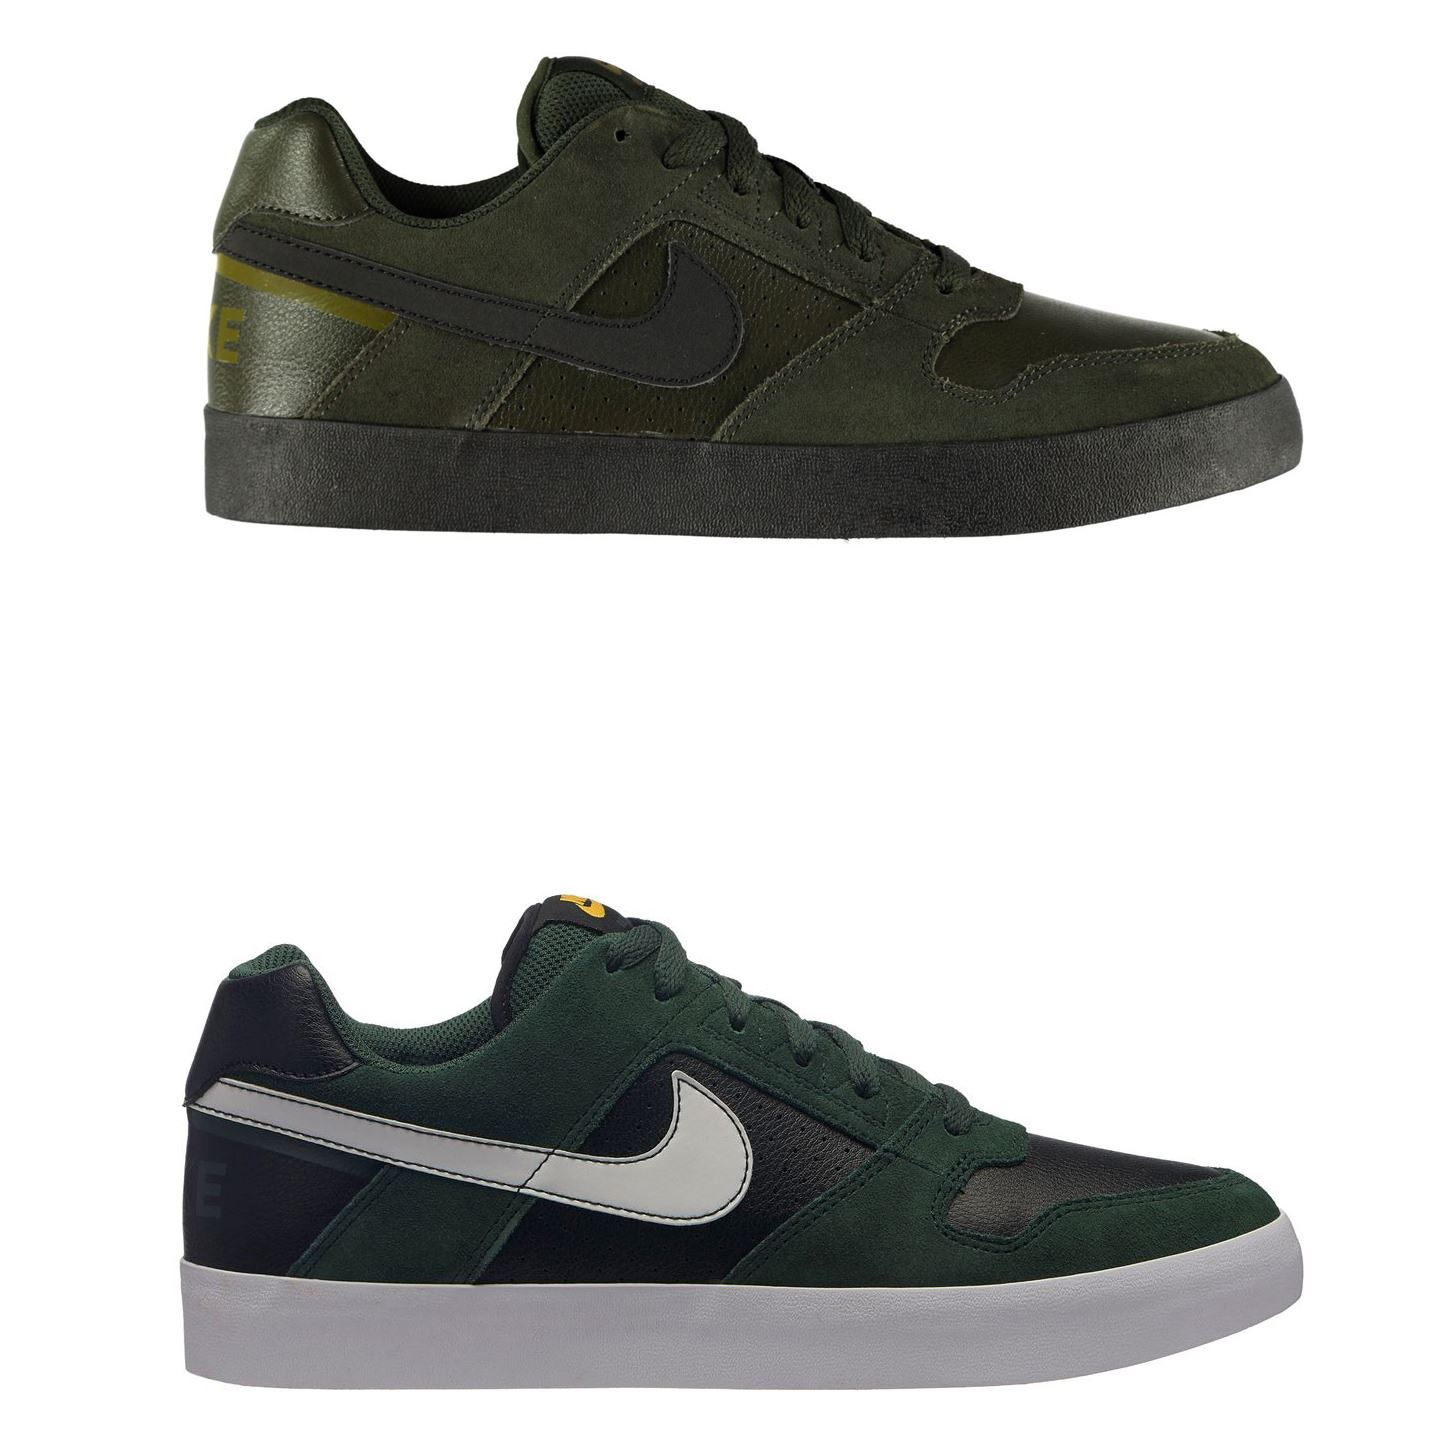 7c87b51ed169 Details about Nike SB Delta Force Trainers Mens Skateboarding Shoes Footwear